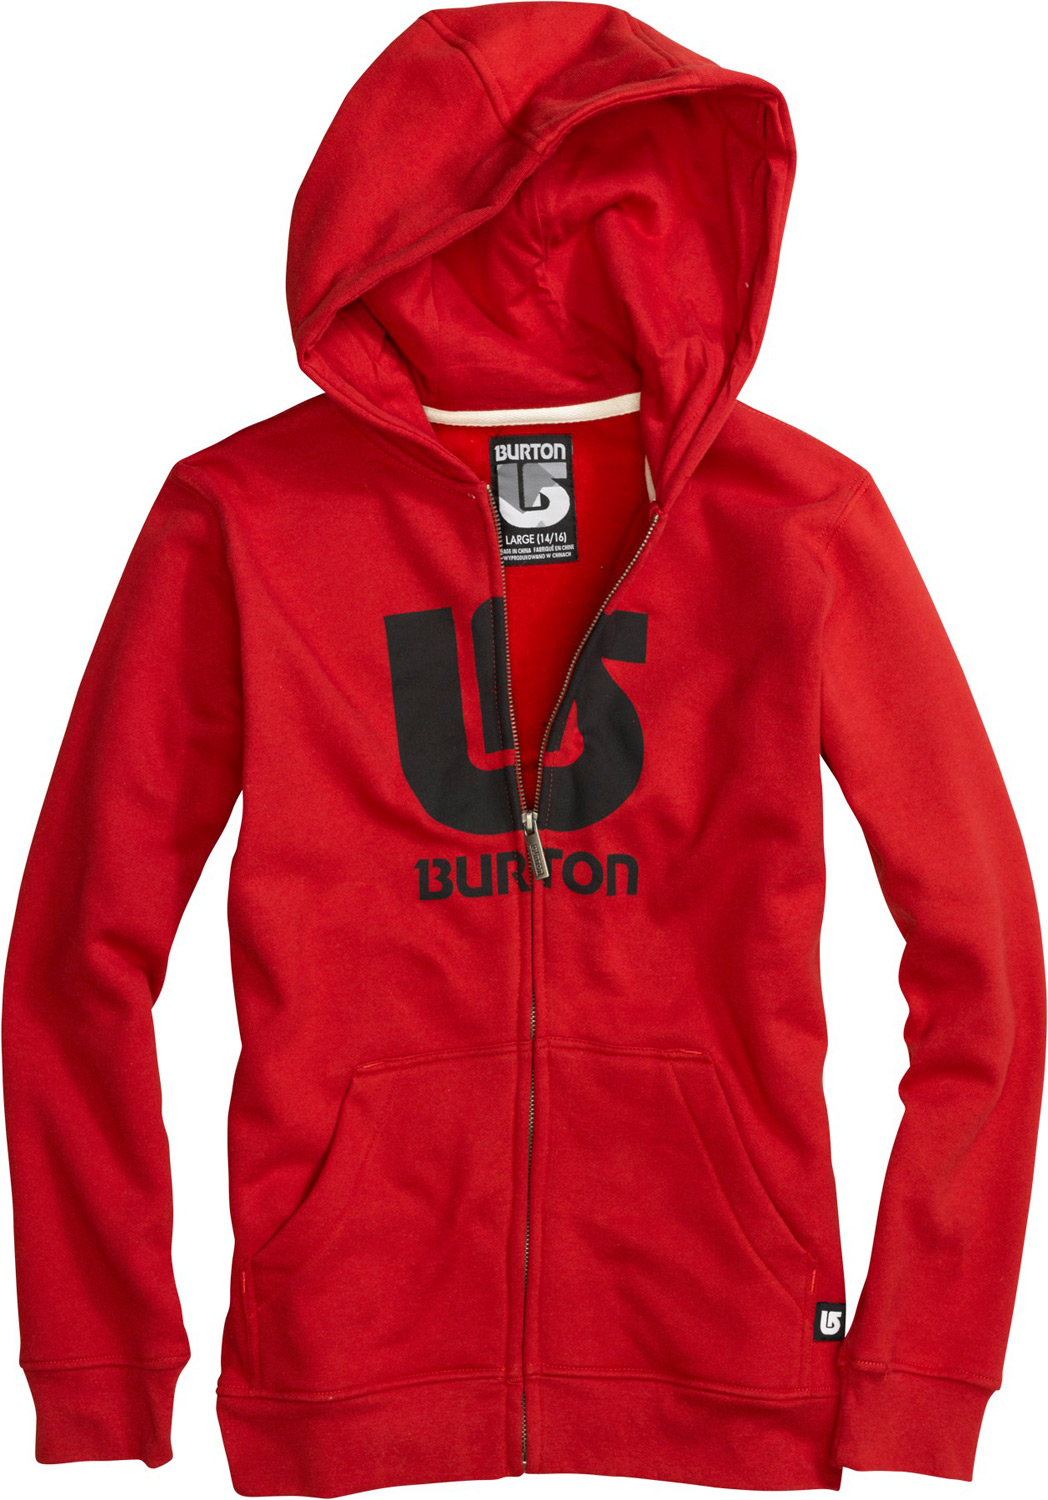 Snowboard Key Features of the Burton Logo Horizontal Fullzip Hoodie: 80% Cotton, 20% Polyester, 300G Fleece screen Print on Chest regular Fit - $51.00